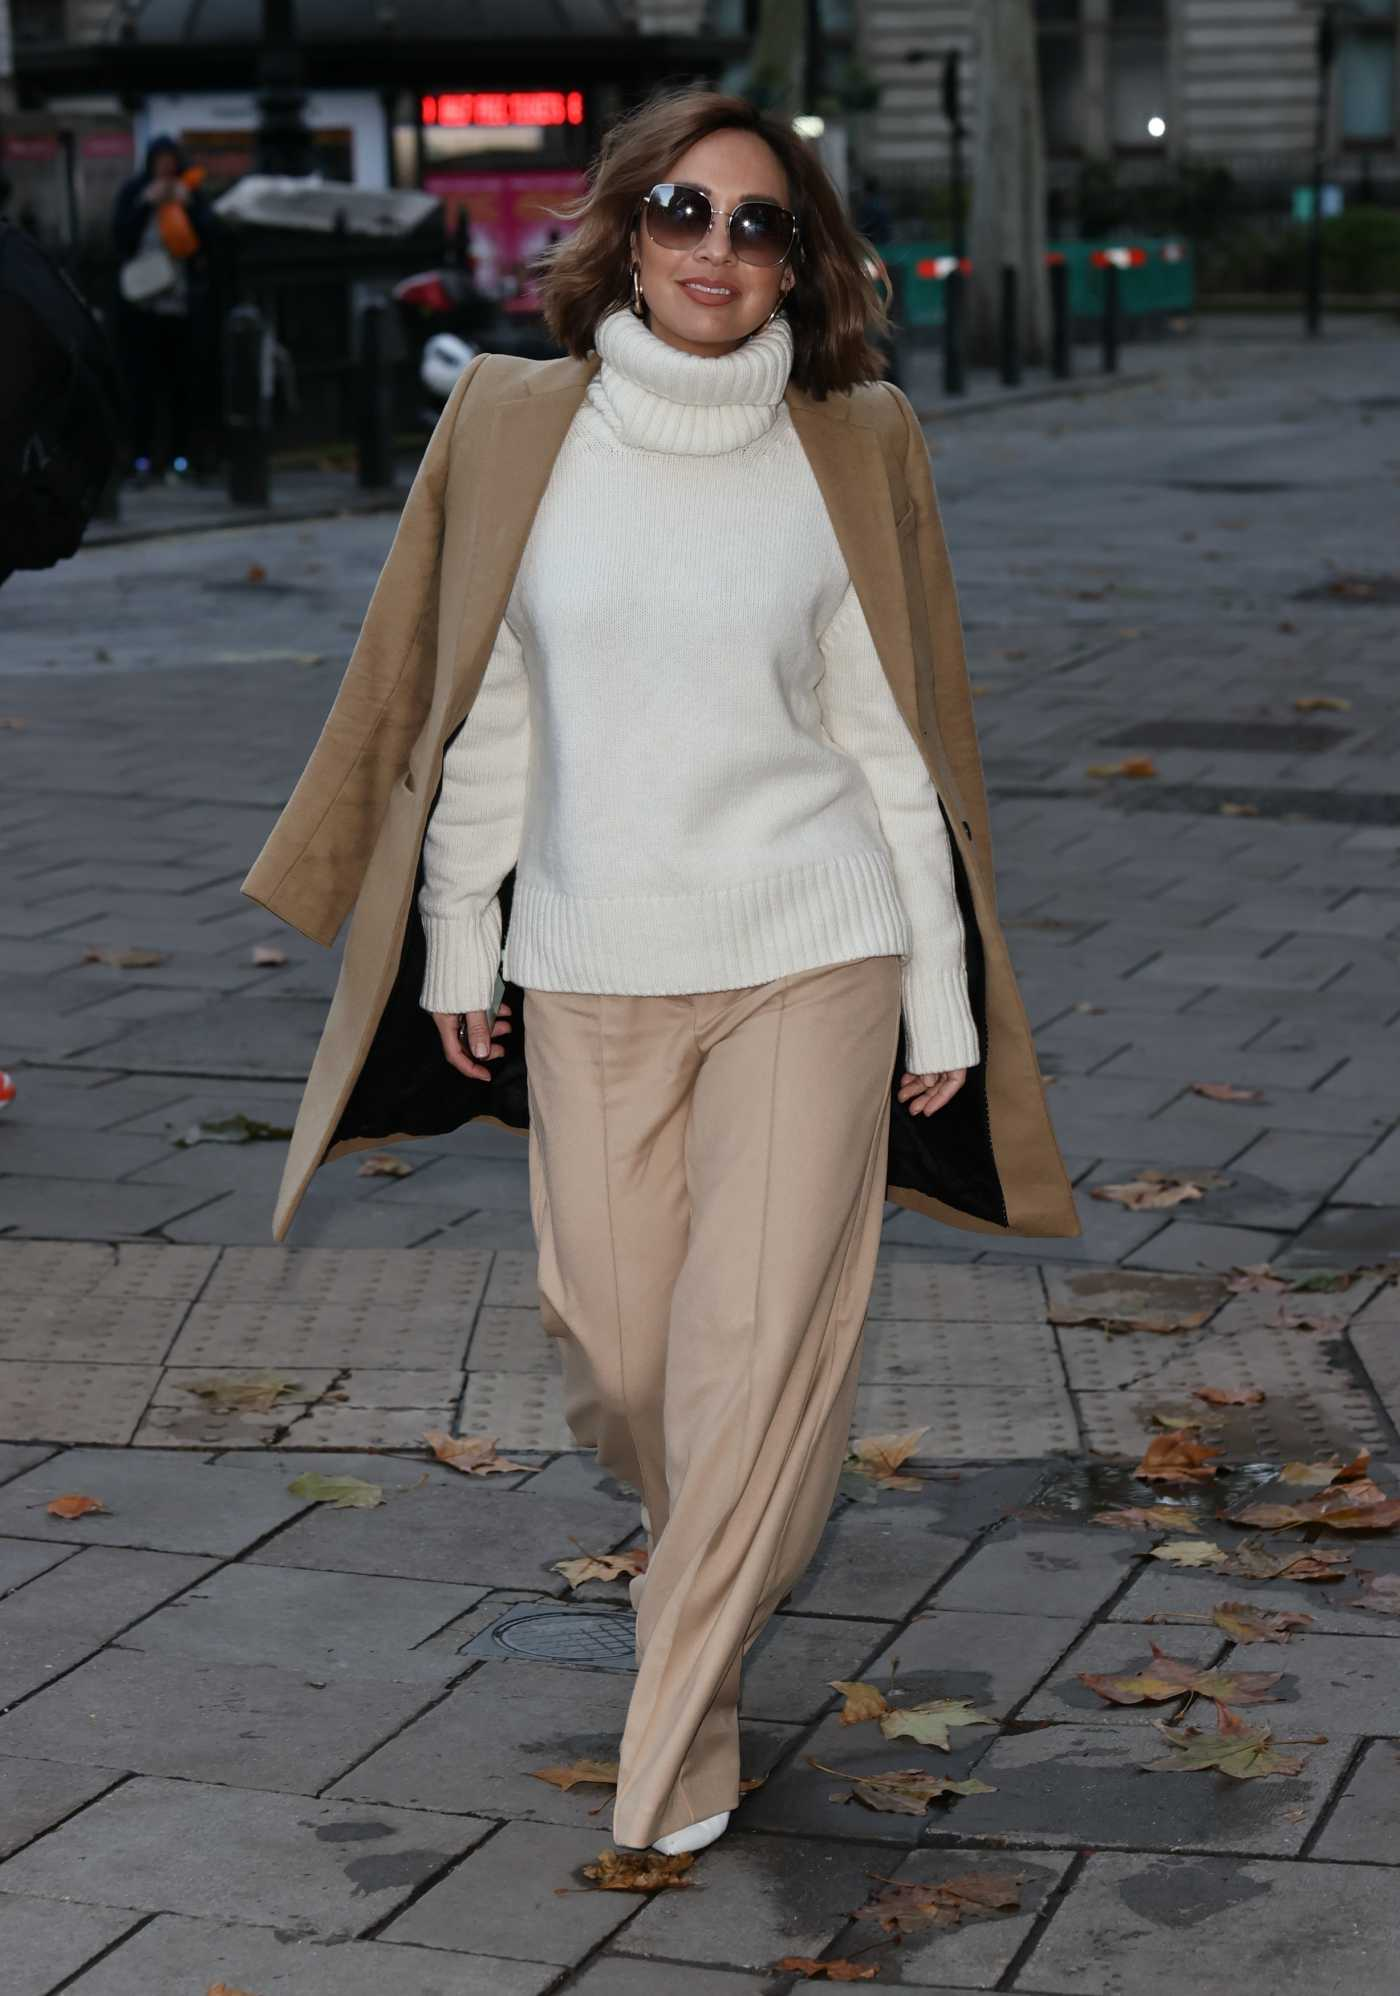 Myleene Klass in a Beige Coat Arrives at the Global Radio in London 11/19/2020